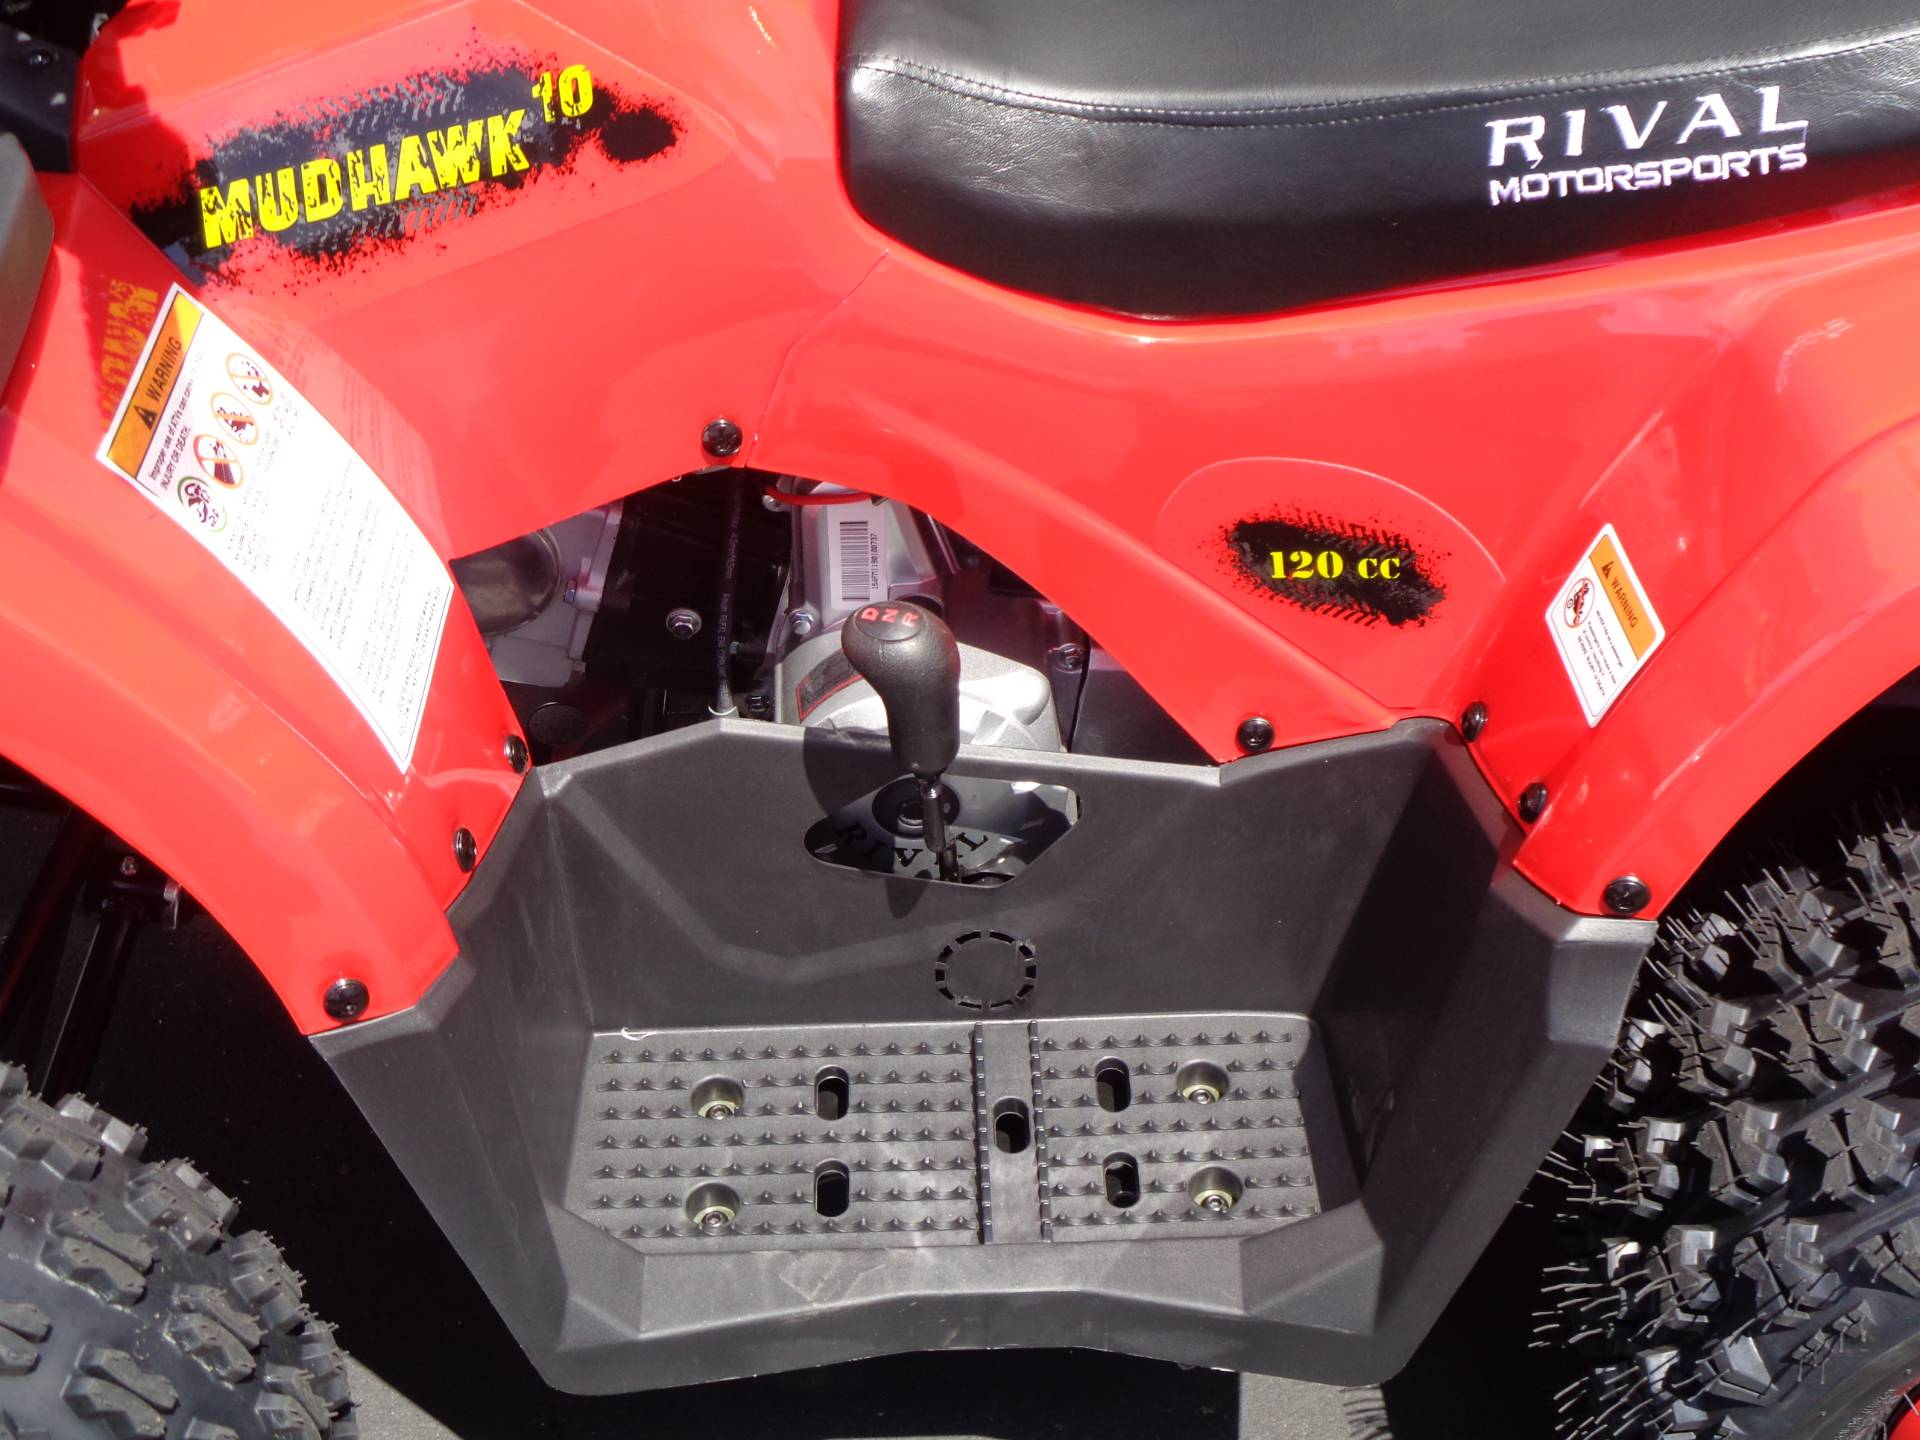 2019 Rival Motorsports CA MudHawk 10 in Chula Vista, California - Photo 18